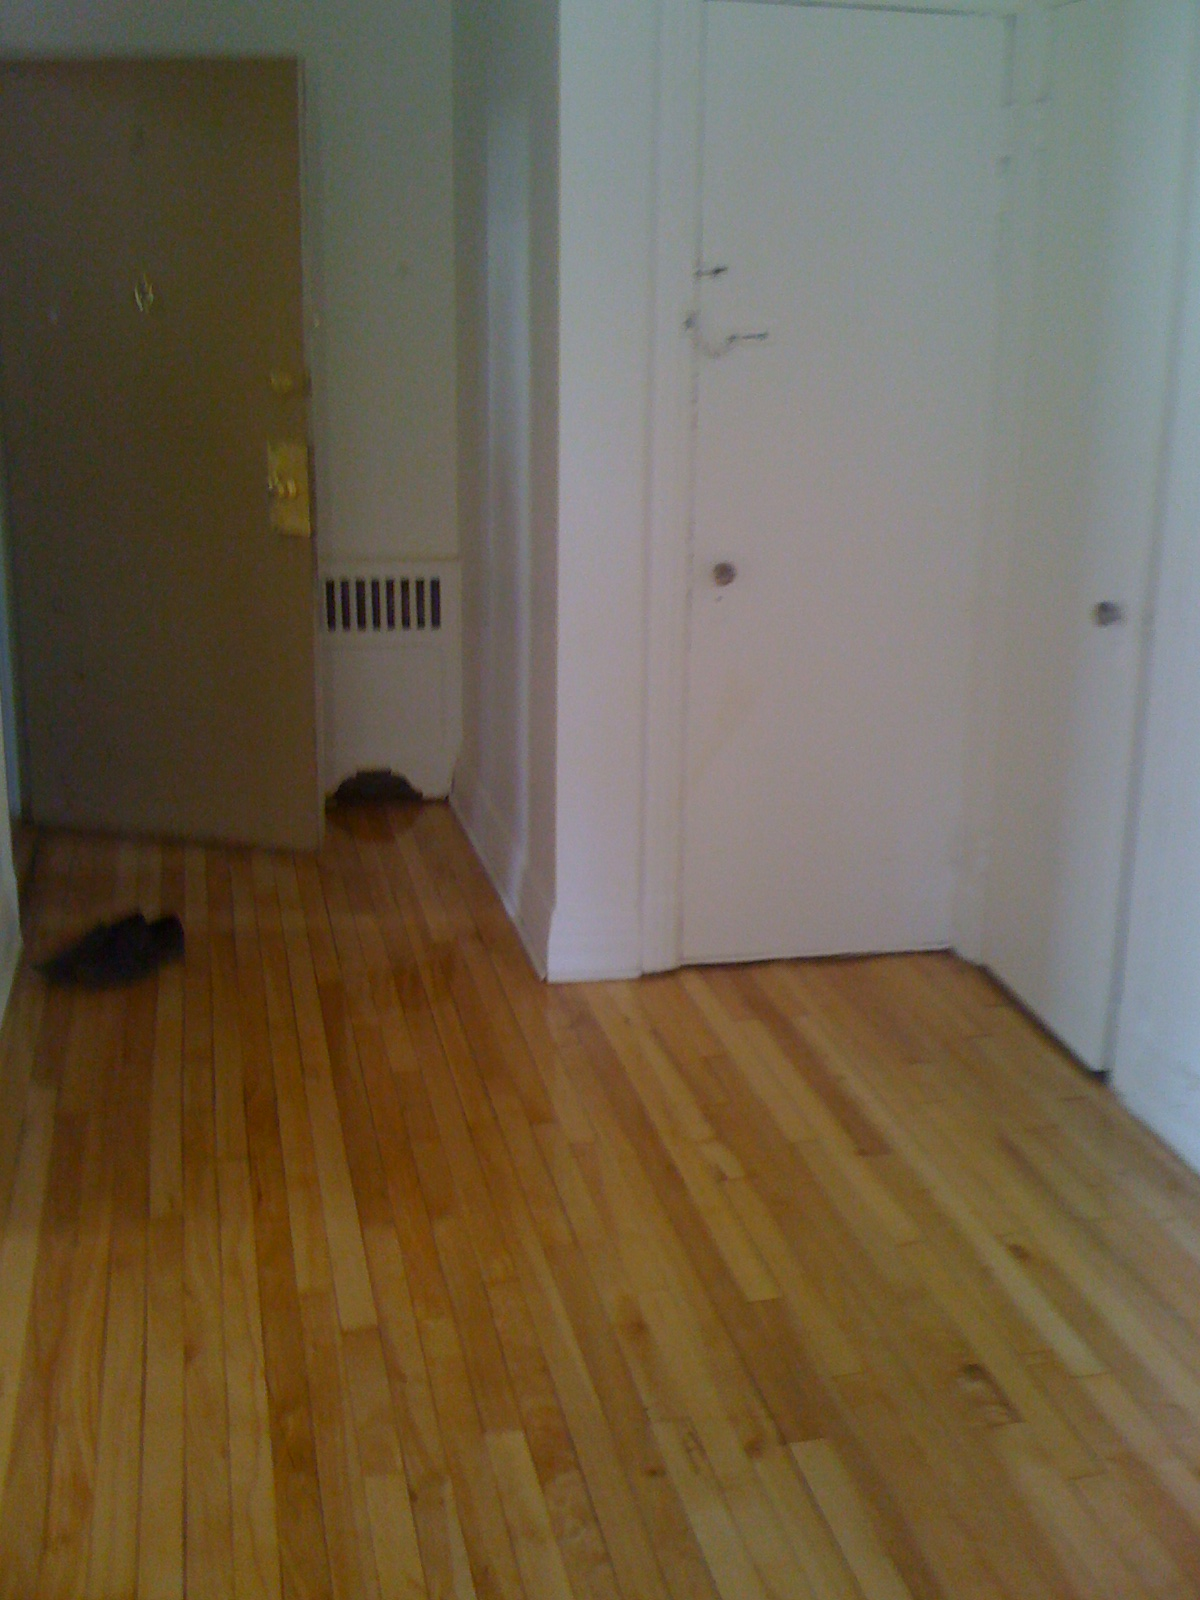 1 bedroom Apartments for rent in Cote-des-Neiges at 4723-25-27-29 Fulton - Photo 04 - RentersPages – L202071